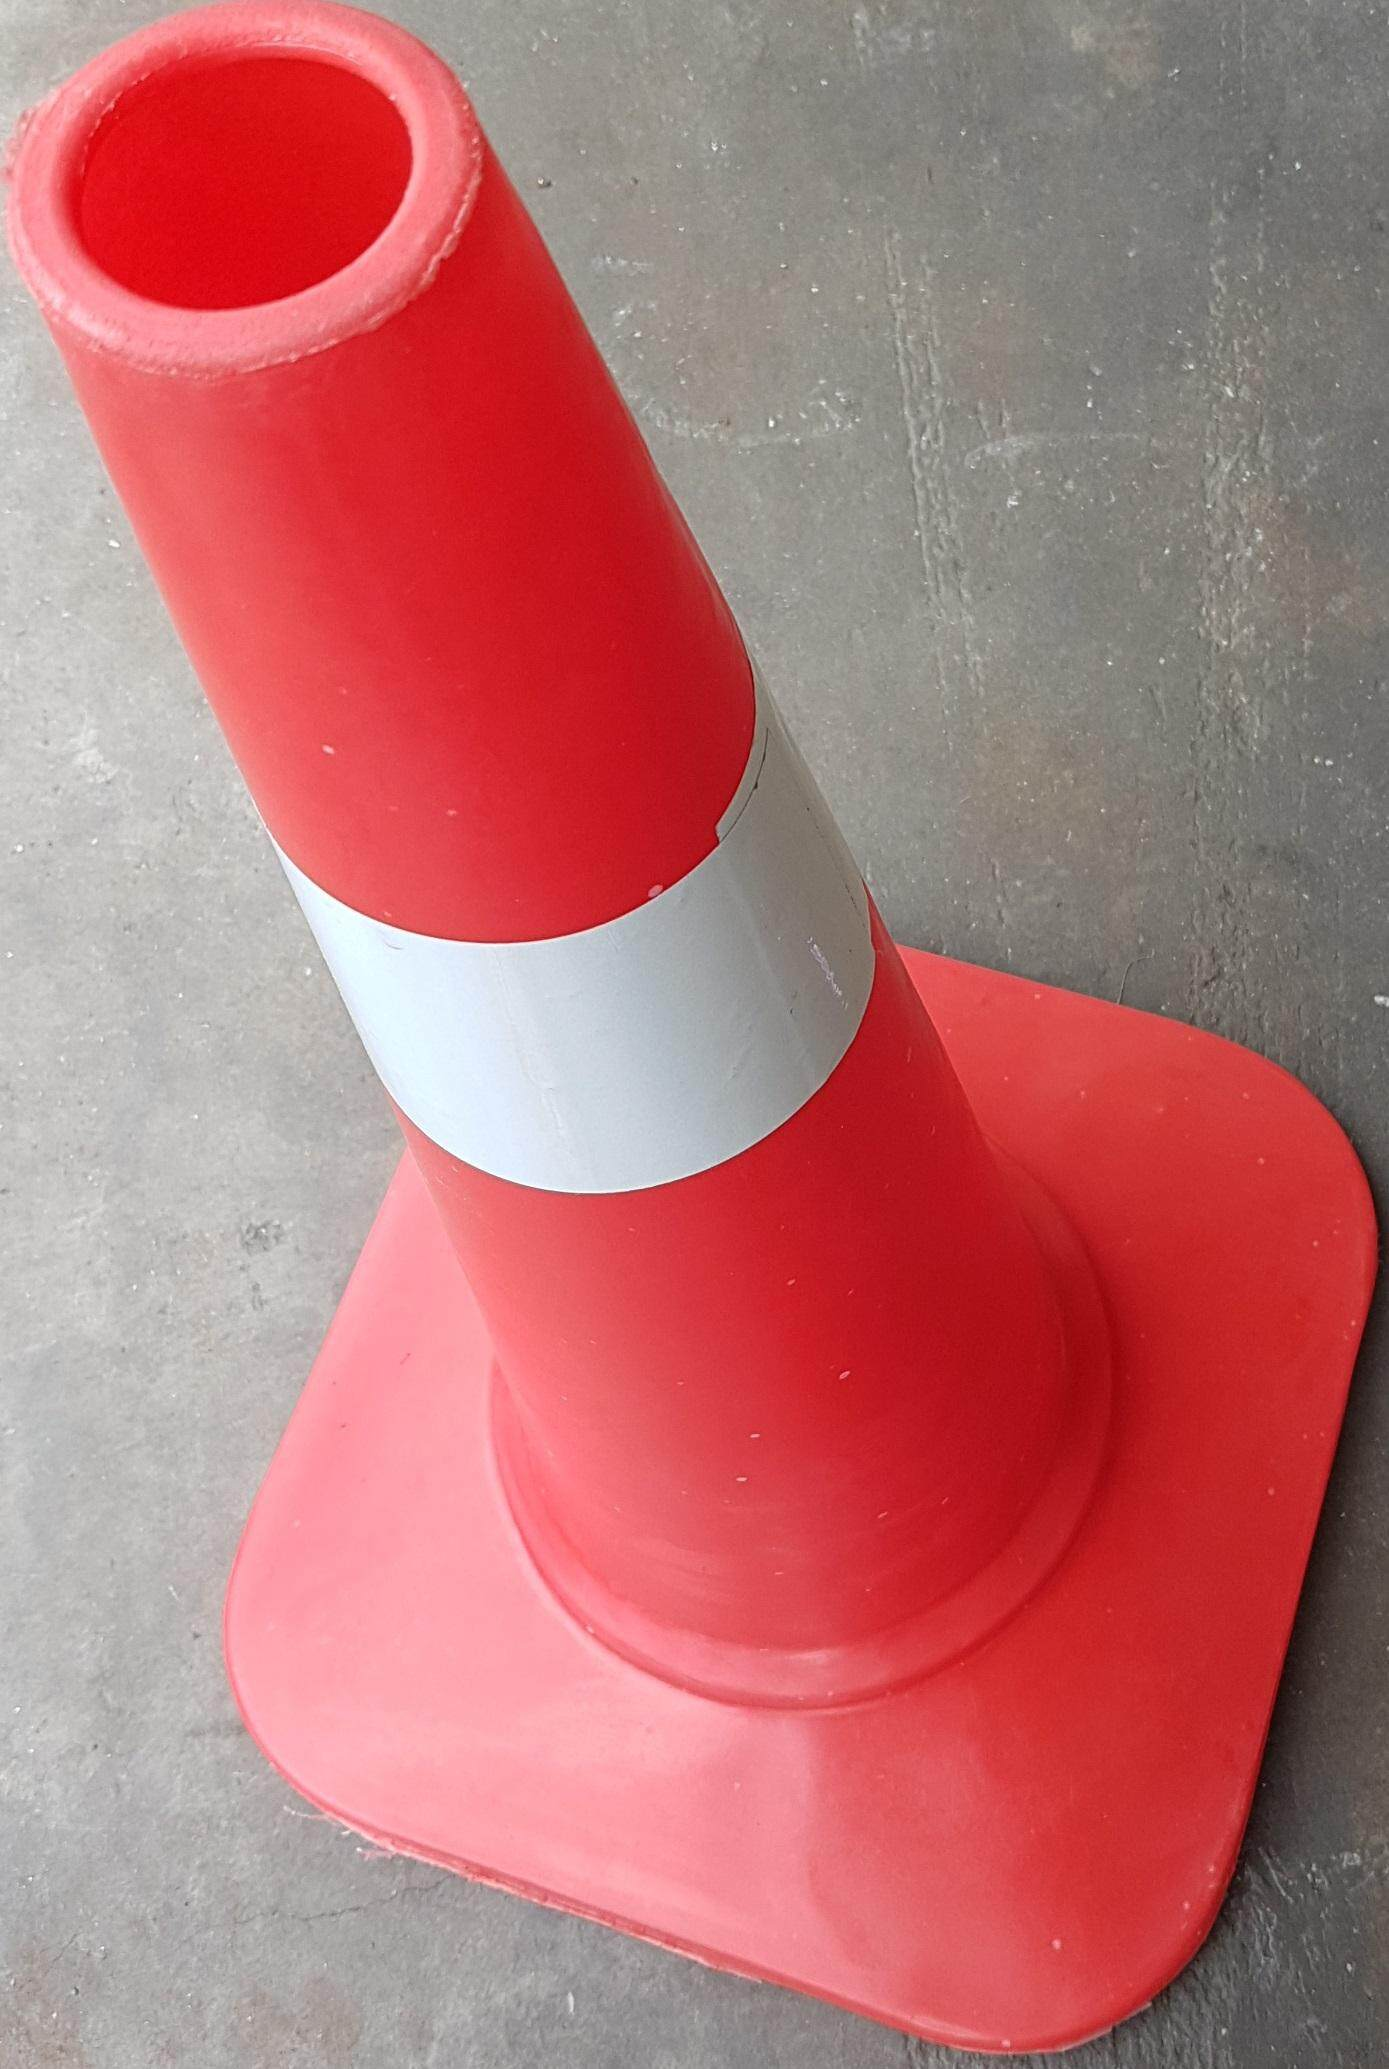 """30"""" inch safety cone stand safe lift jack floor high look hole construction fit center road block repair blocking"""